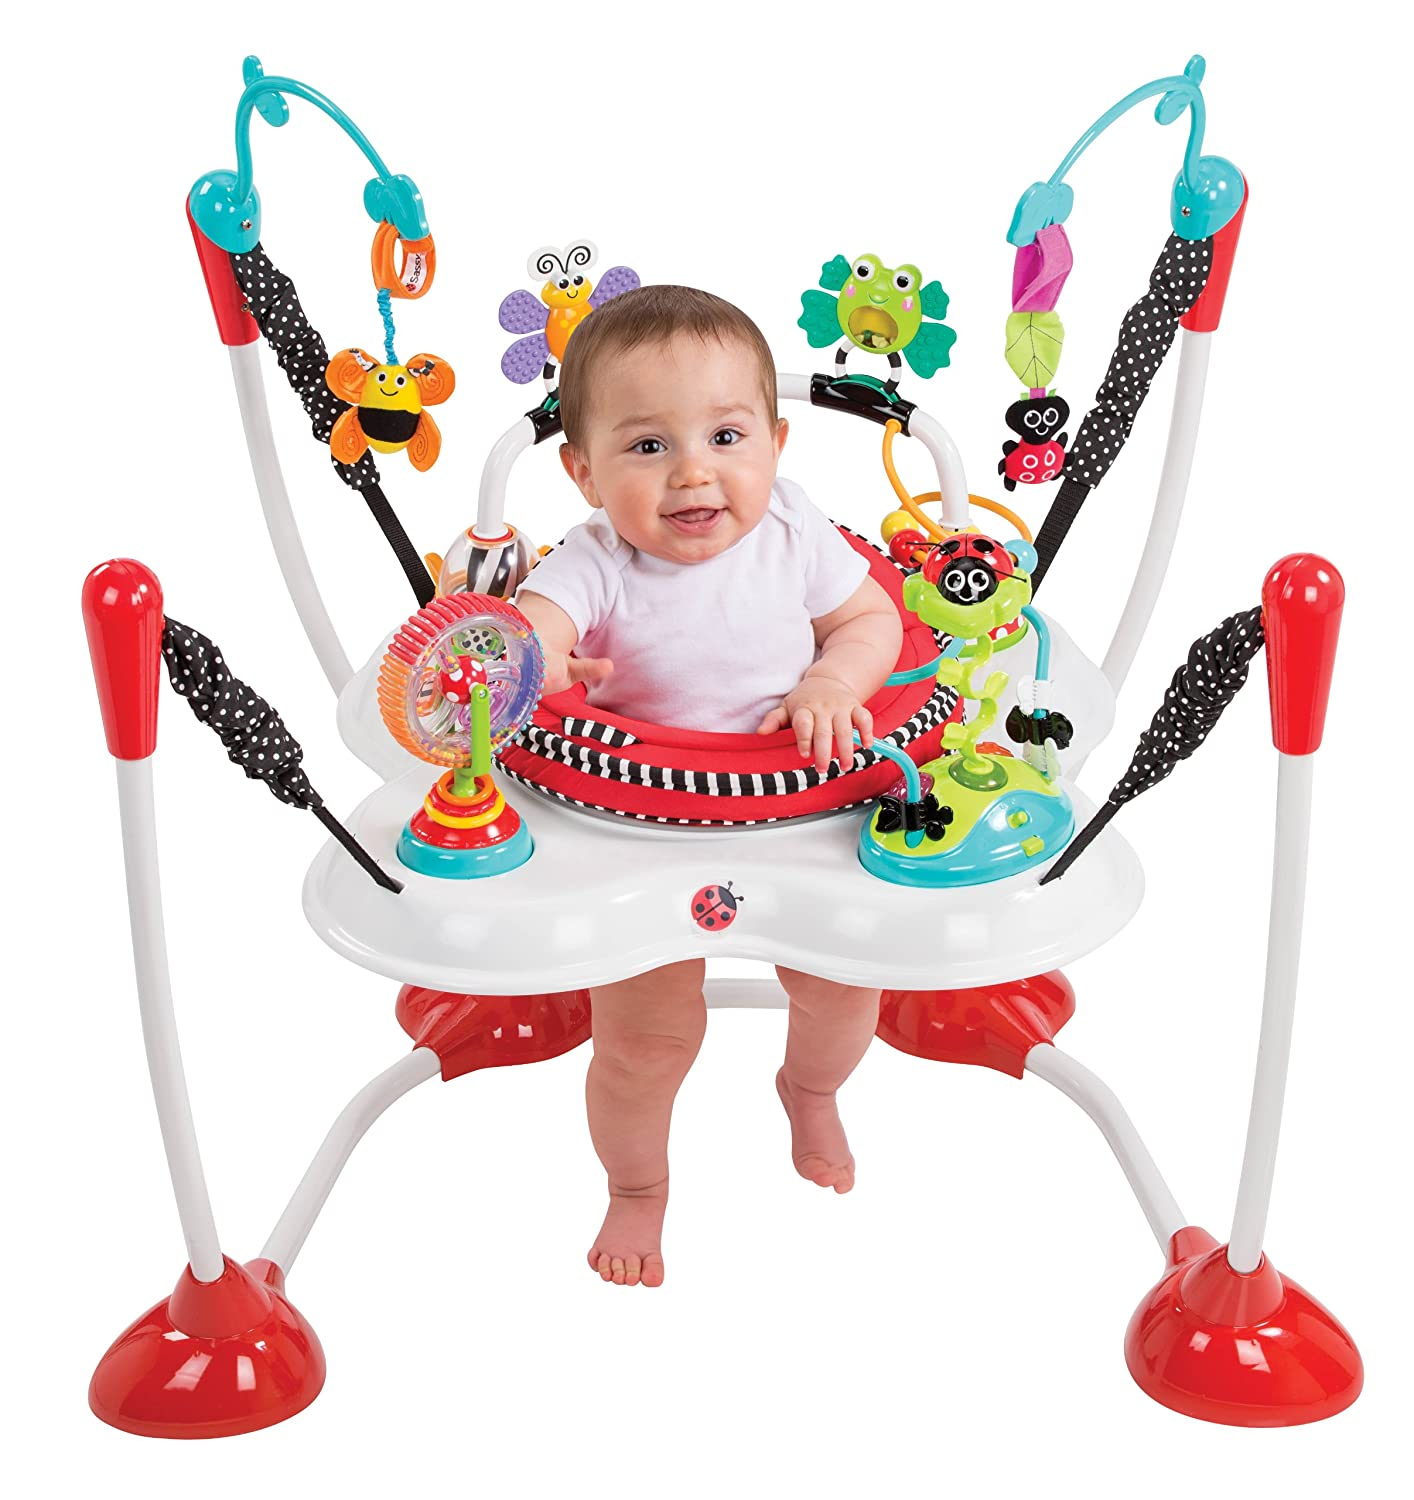 baby einstein musical motion activity jumper baby gear and accessories. Black Bedroom Furniture Sets. Home Design Ideas